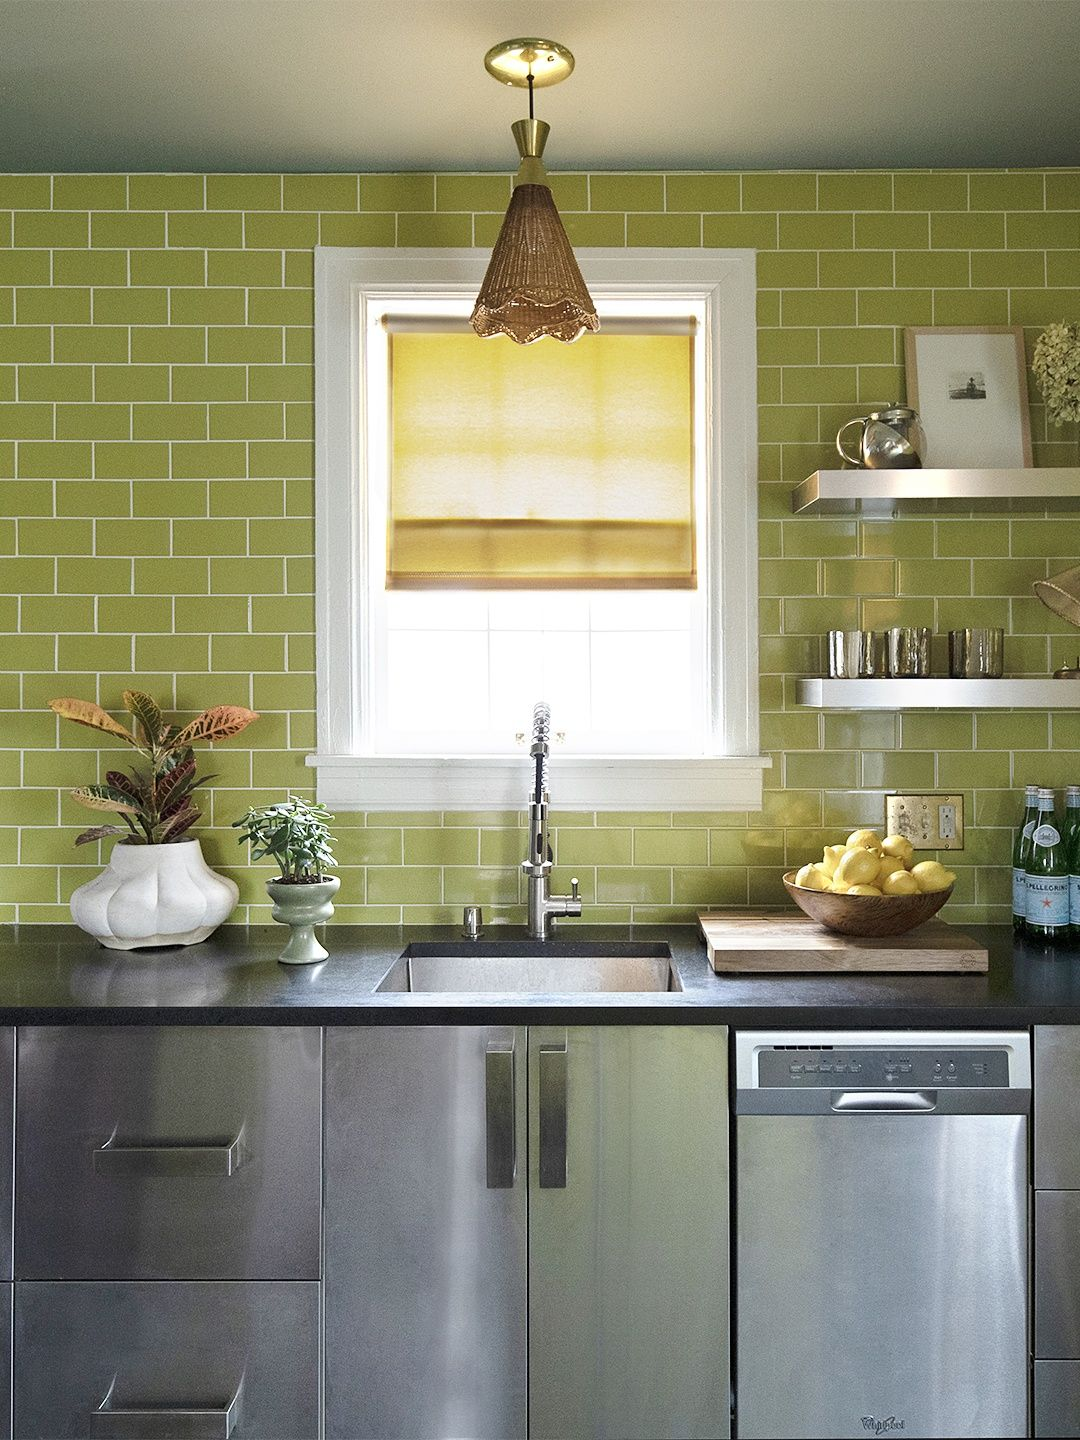 6 Metal Kitchen Cabinets That Prove Industrial Is More Versatile Than You Think In 2020 Metal Kitchen Cabinets Metal Kitchen Kitchen Cabinets